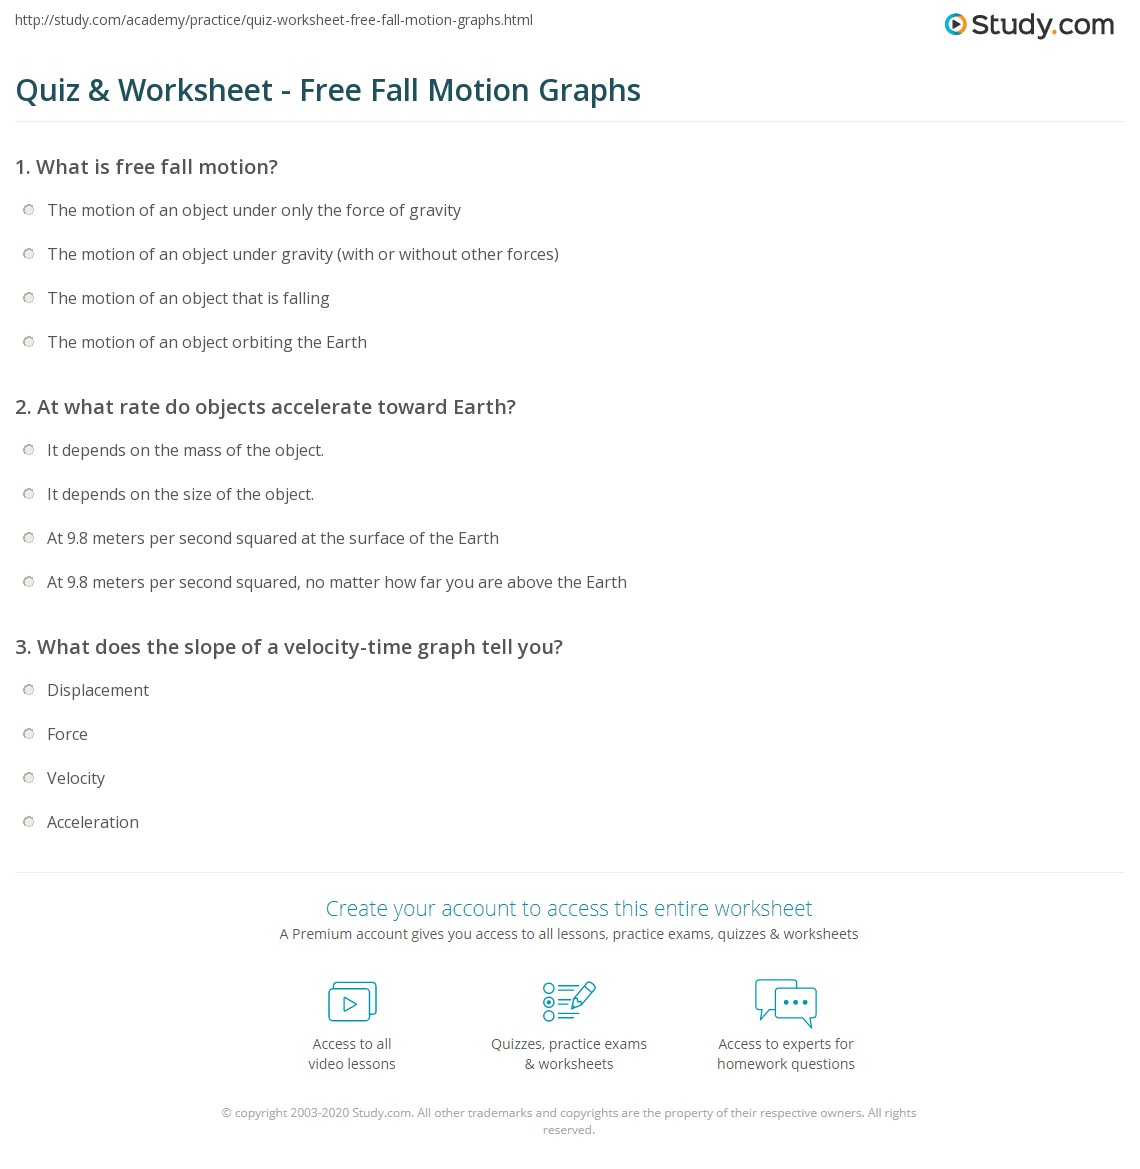 Quiz & Worksheet - Free Fall Motion Graphs | Study.com